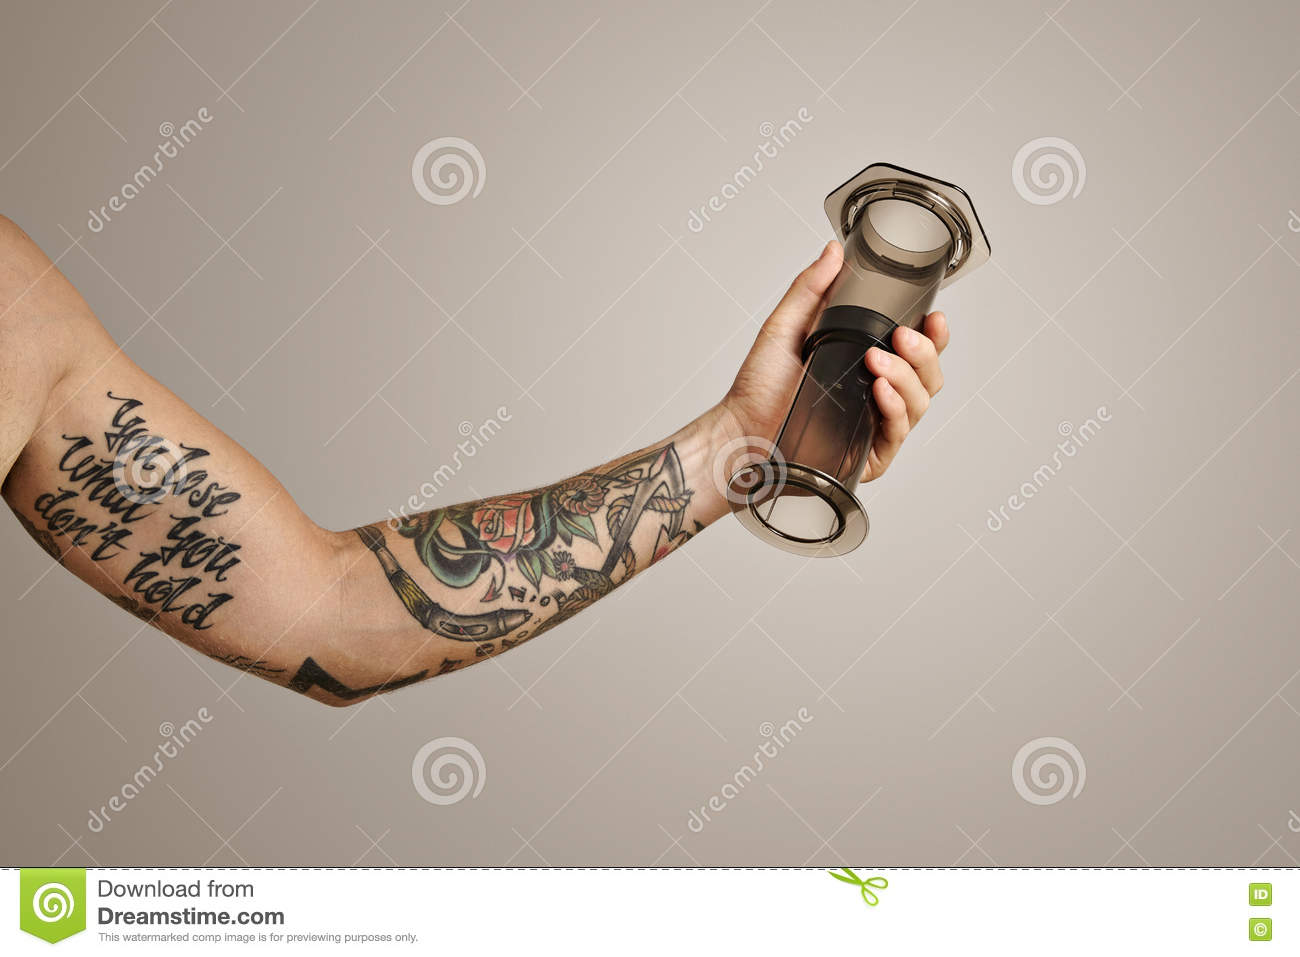 0479b1c3b A close up shot of a tattooed arm and hand holding a light gray aeropress  nontraditional coffee brewing equipment